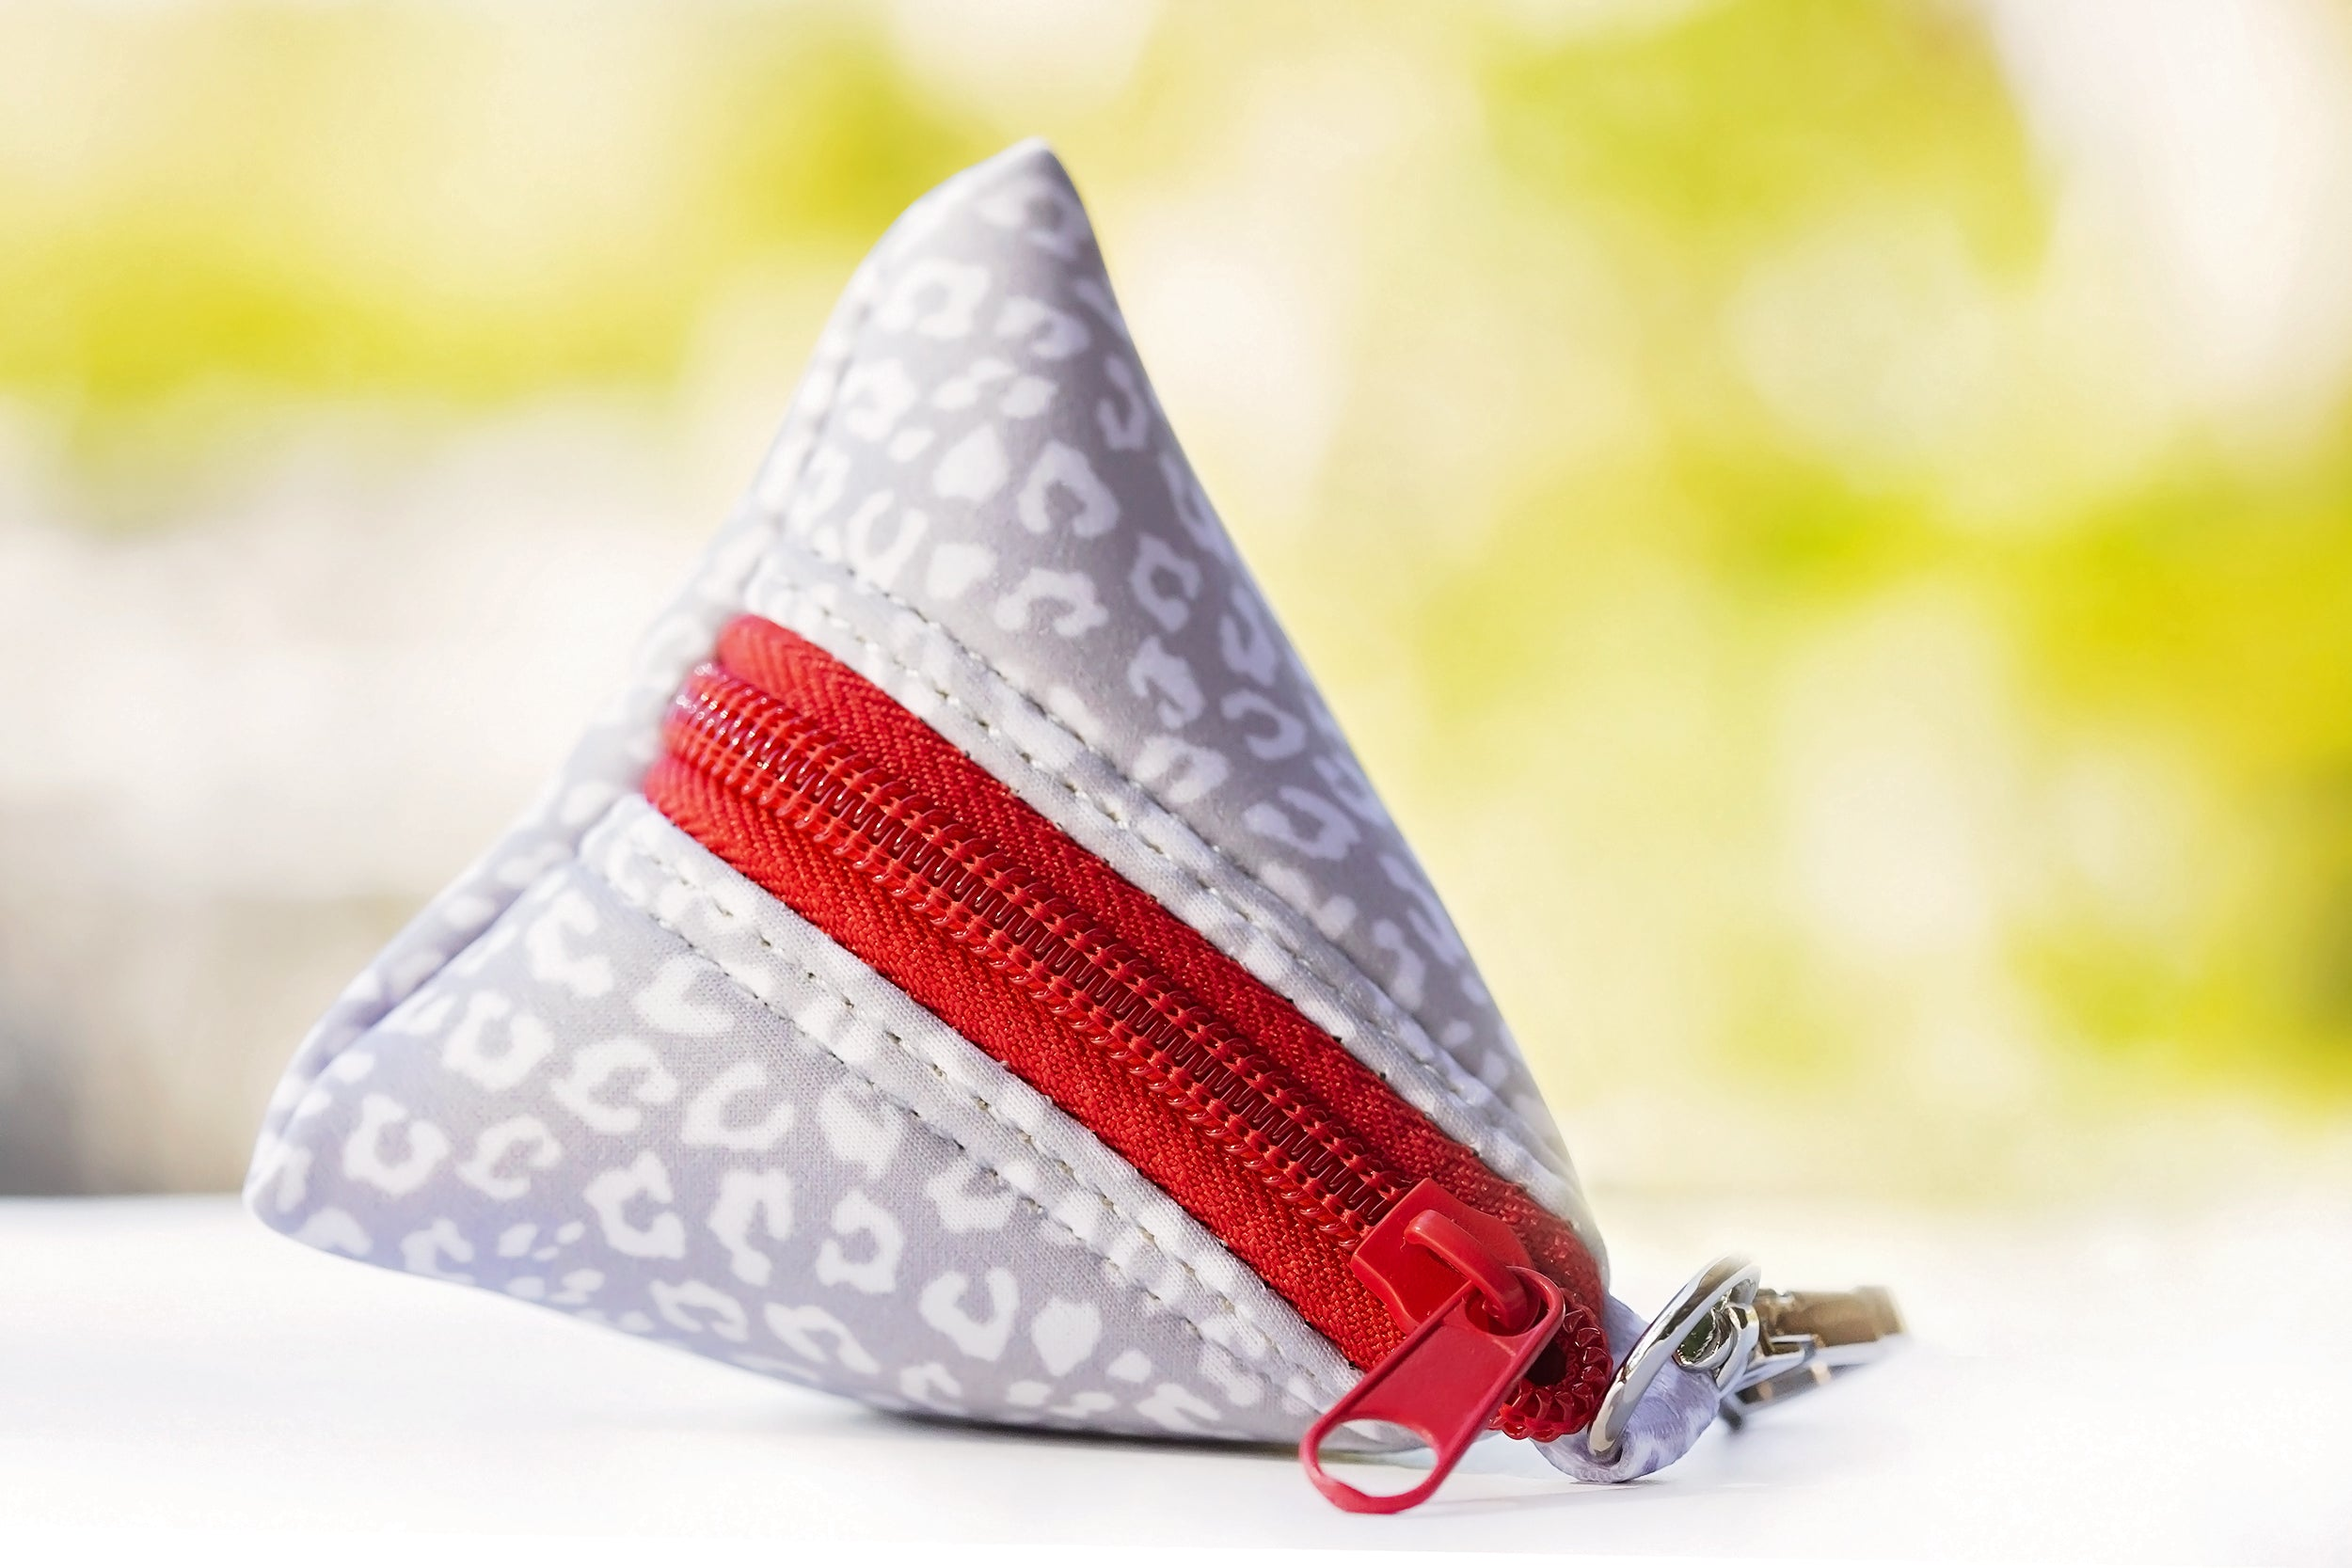 Snow Leopard Pocket- For Poop Bags, Treat and/or Keys/Coins-Dizzy Dog Collars